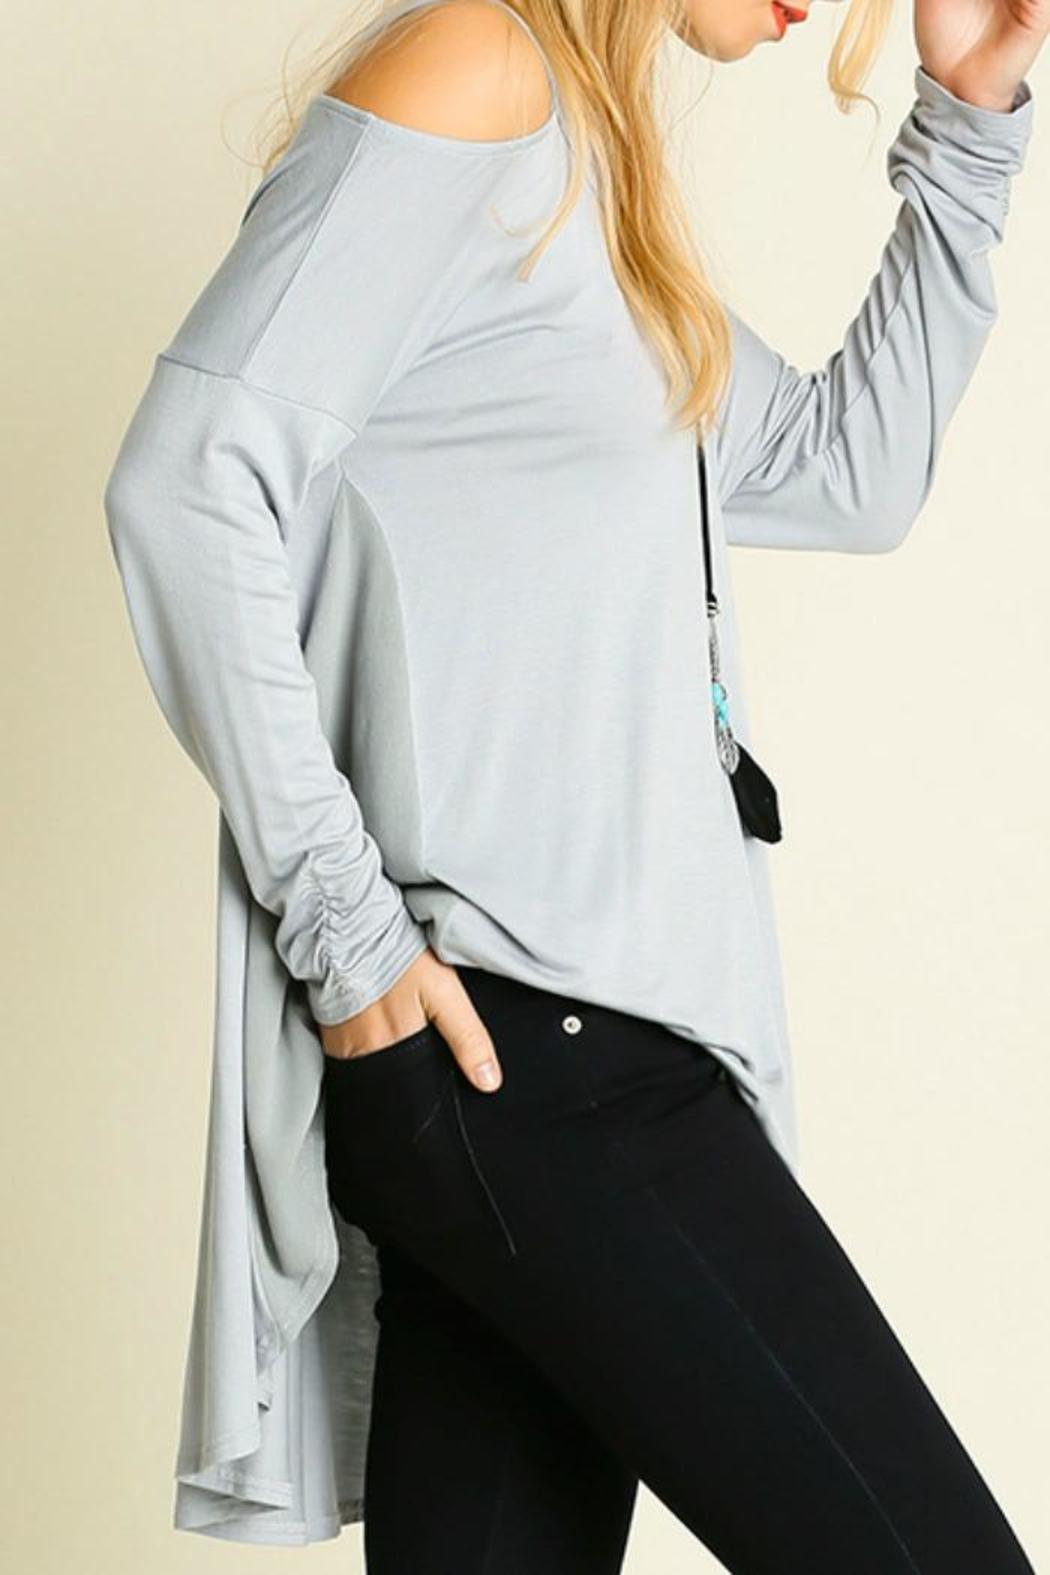 b90a5f4f0588a2 Umgee USA Peek-a-Boo Shoulder Top from Franklin by Adalees — Shoptiques